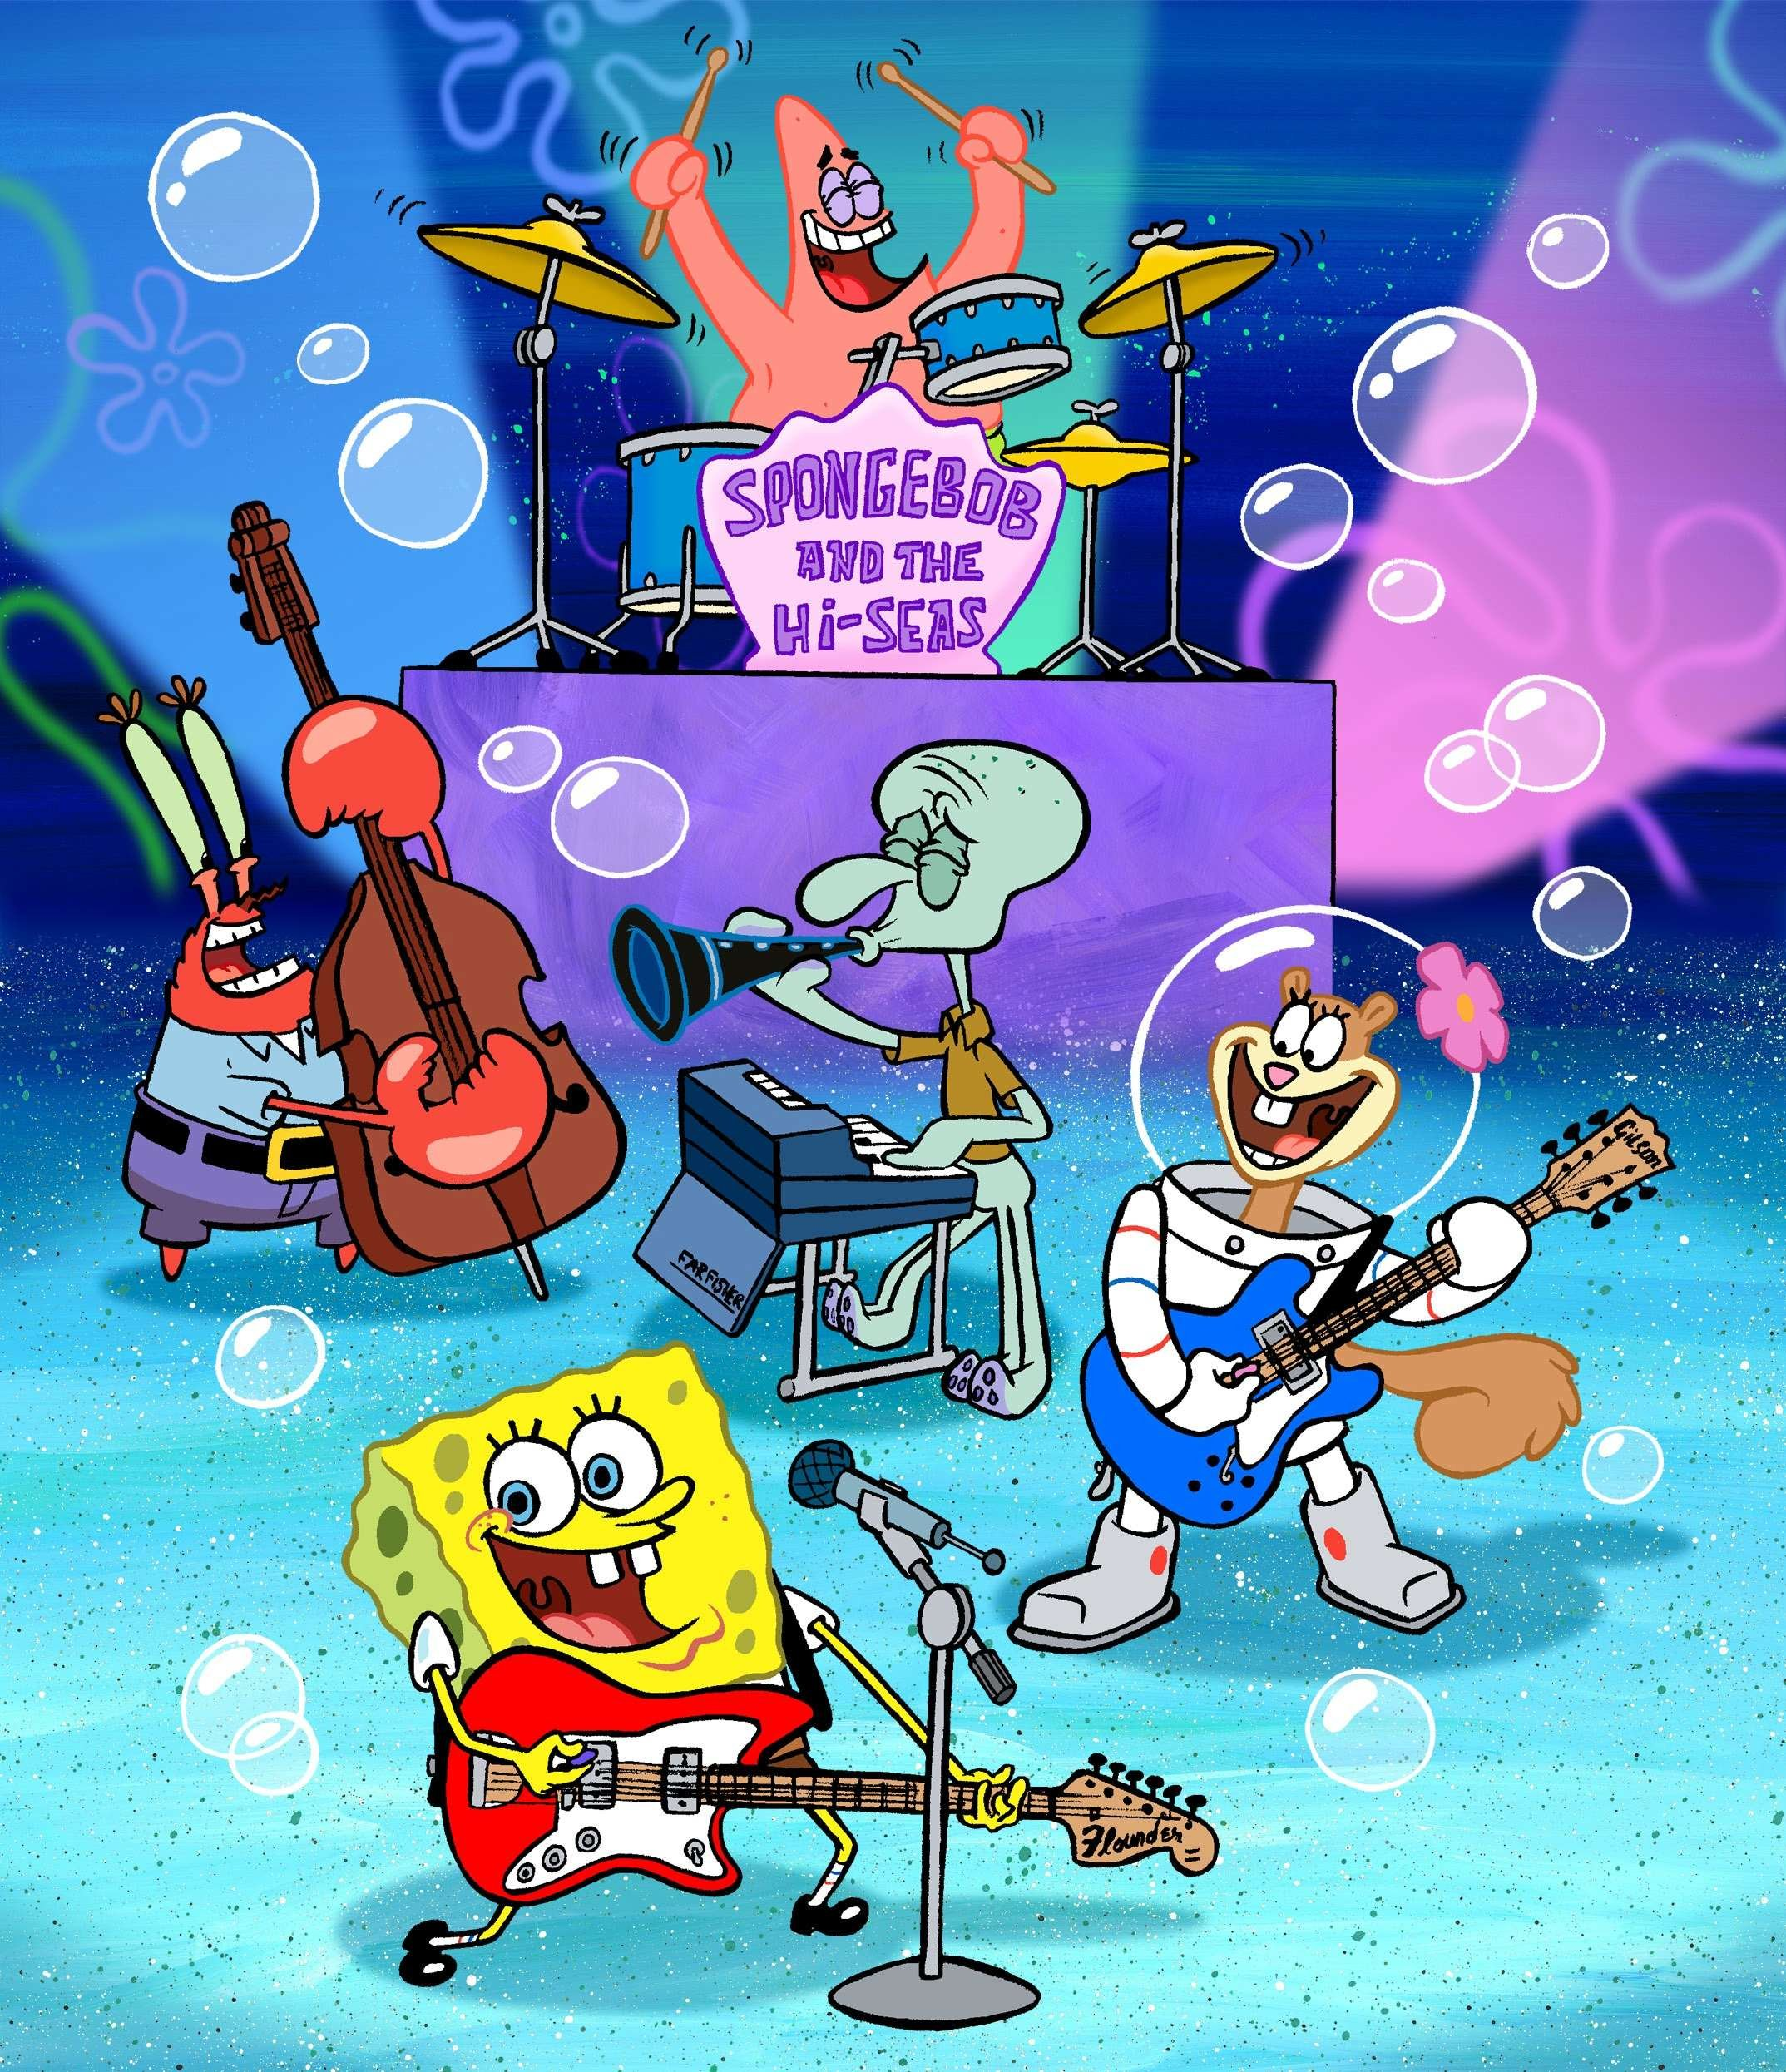 Spongebob's band wallpaper